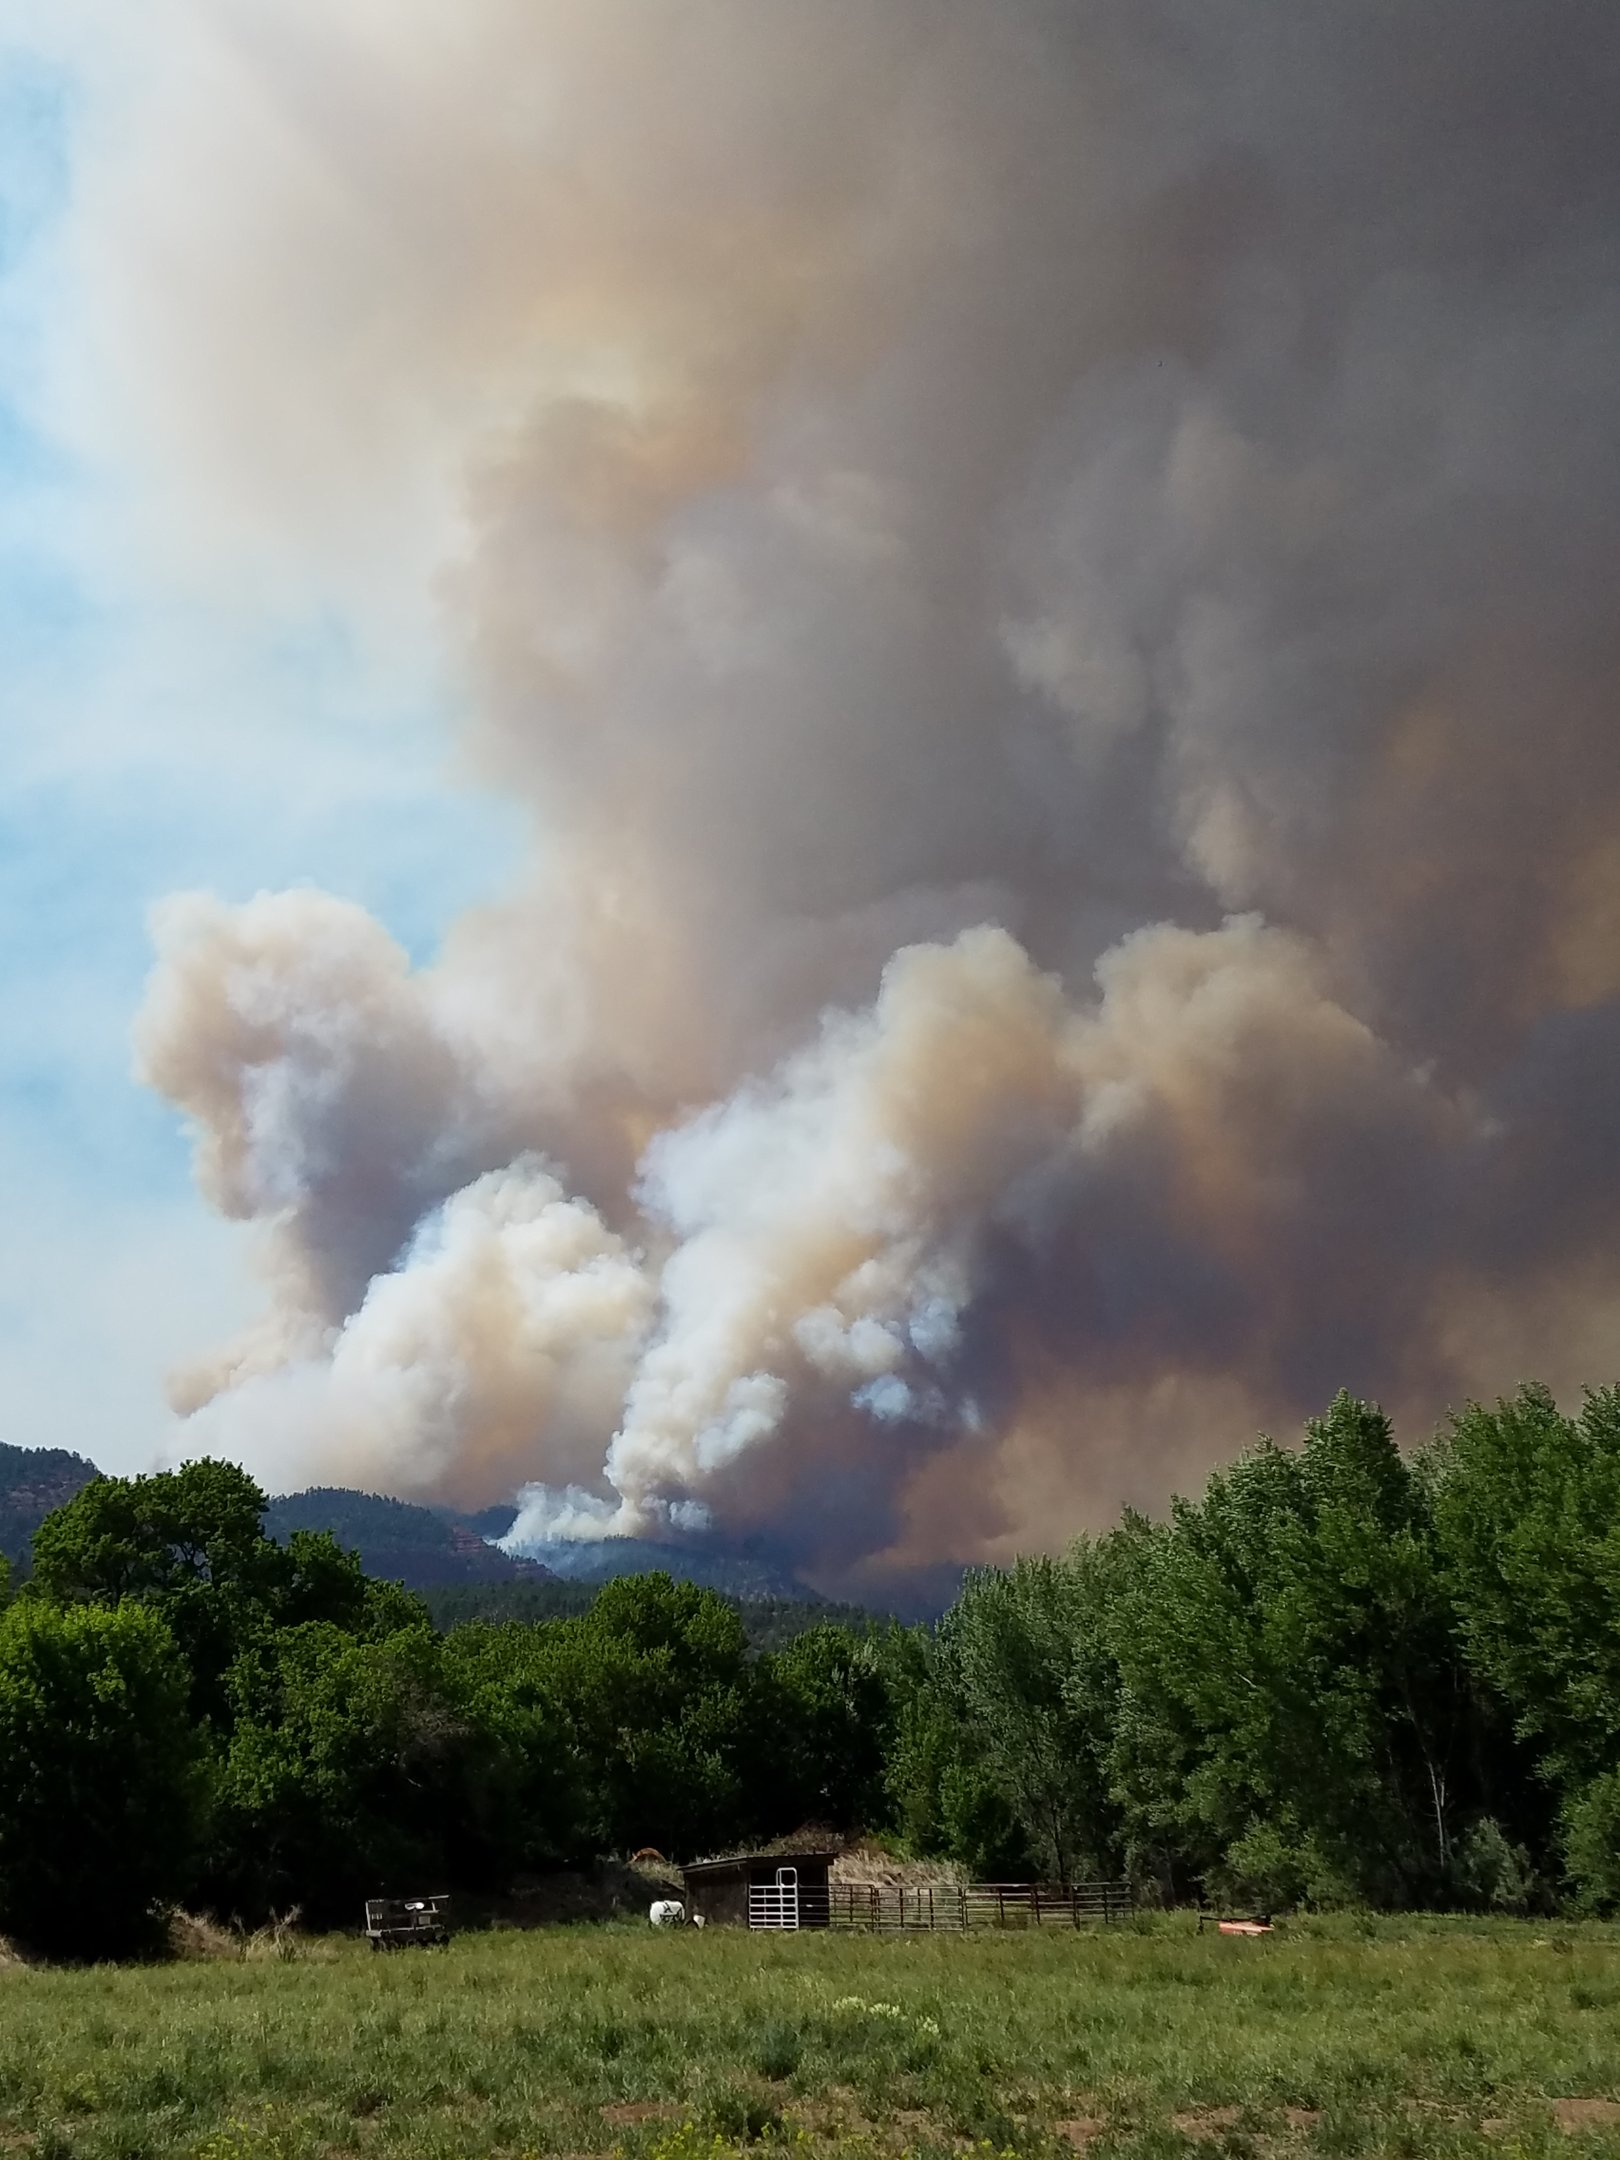 20180612_160227-jpg.43988_Firefighting in Colorado_Off the Road_Squat the Planet_6:42 PM